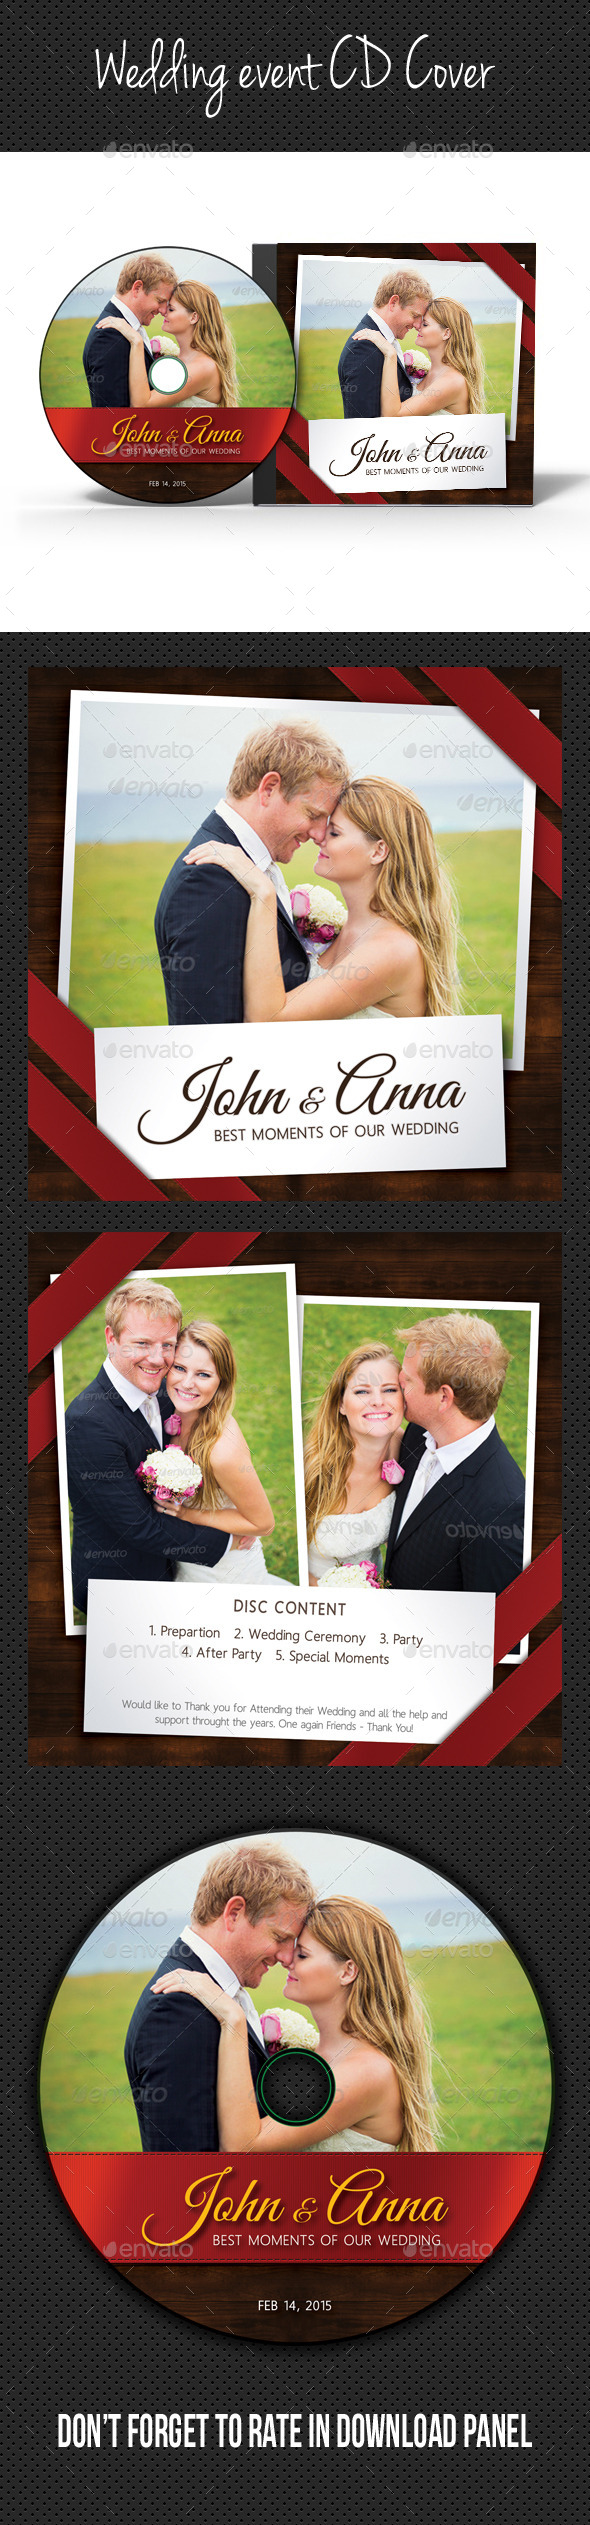 Wedding Event CD Cover V08 - CD & DVD Artwork Print Templates